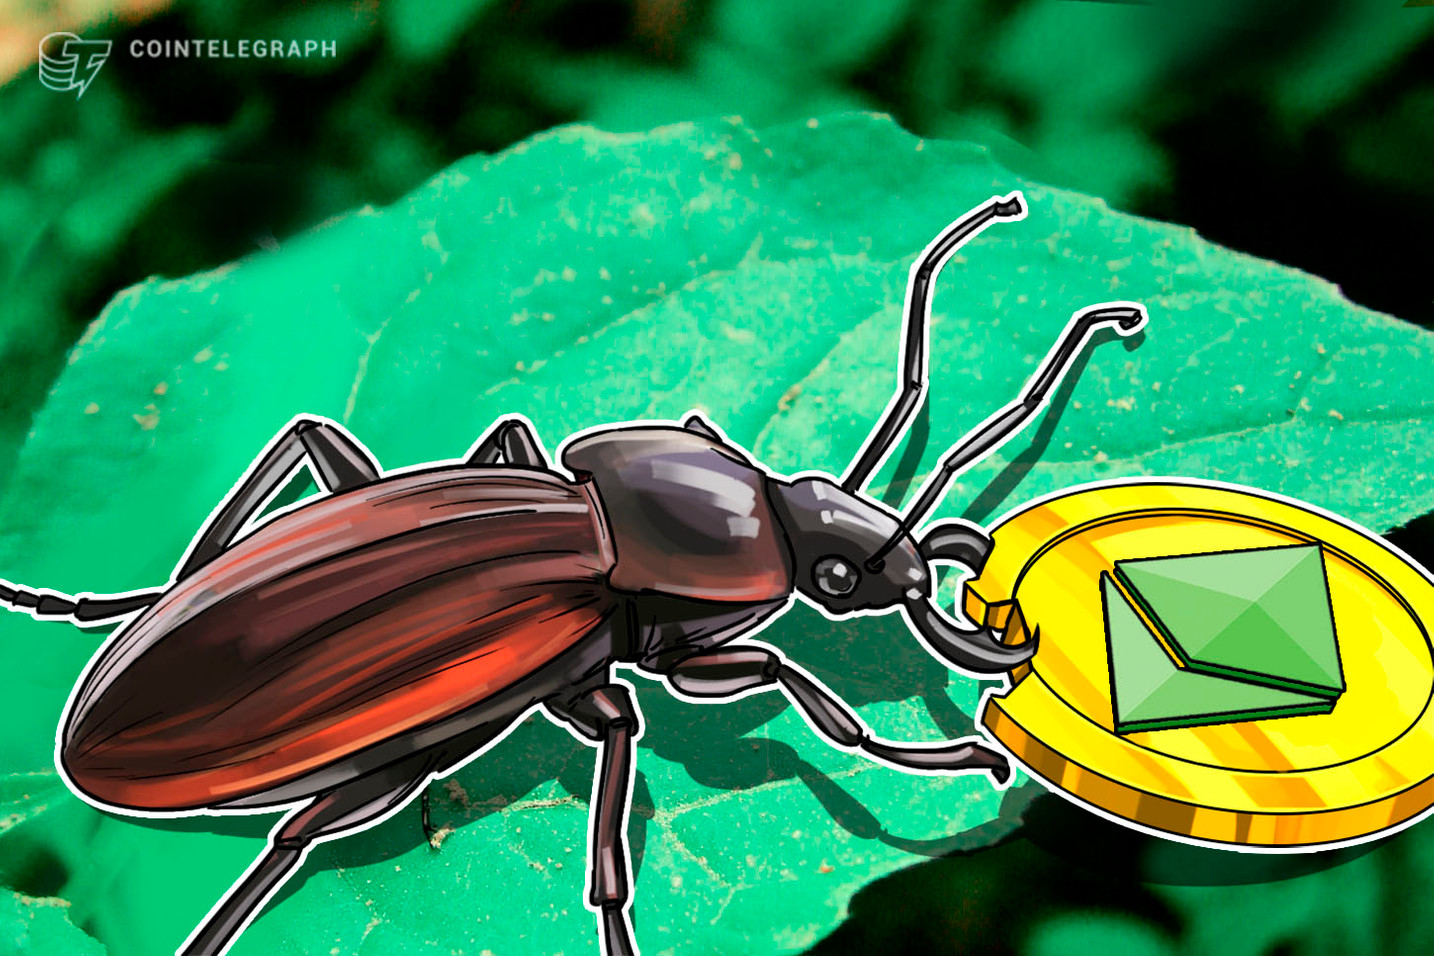 Parity Urges Users to Install Update After Discovering Testnet Vulnerability